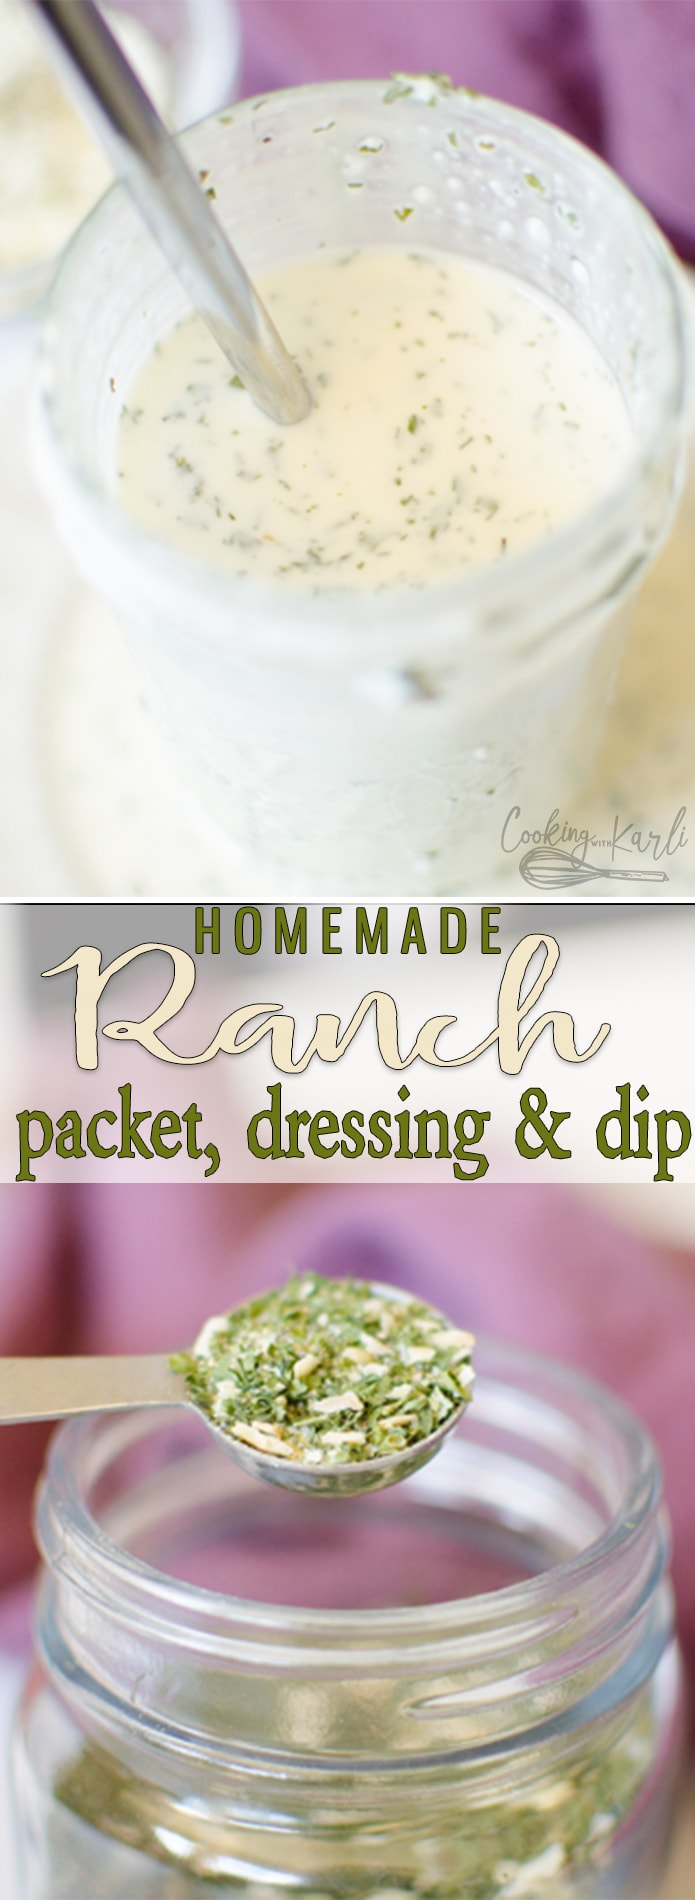 Homemade Ranch Dressing Mix is a simple mixture of herbs and spices to replace the over-priced store-bought ranch dressing packets. This dressing mix is quick to toss together and keeps well for months! Make dressing, dip or even use it in place of ranch dressing packets in a specific recipe! |Cooking with Karli| #ranch #diy #homemade #packet #dressing #seasoing